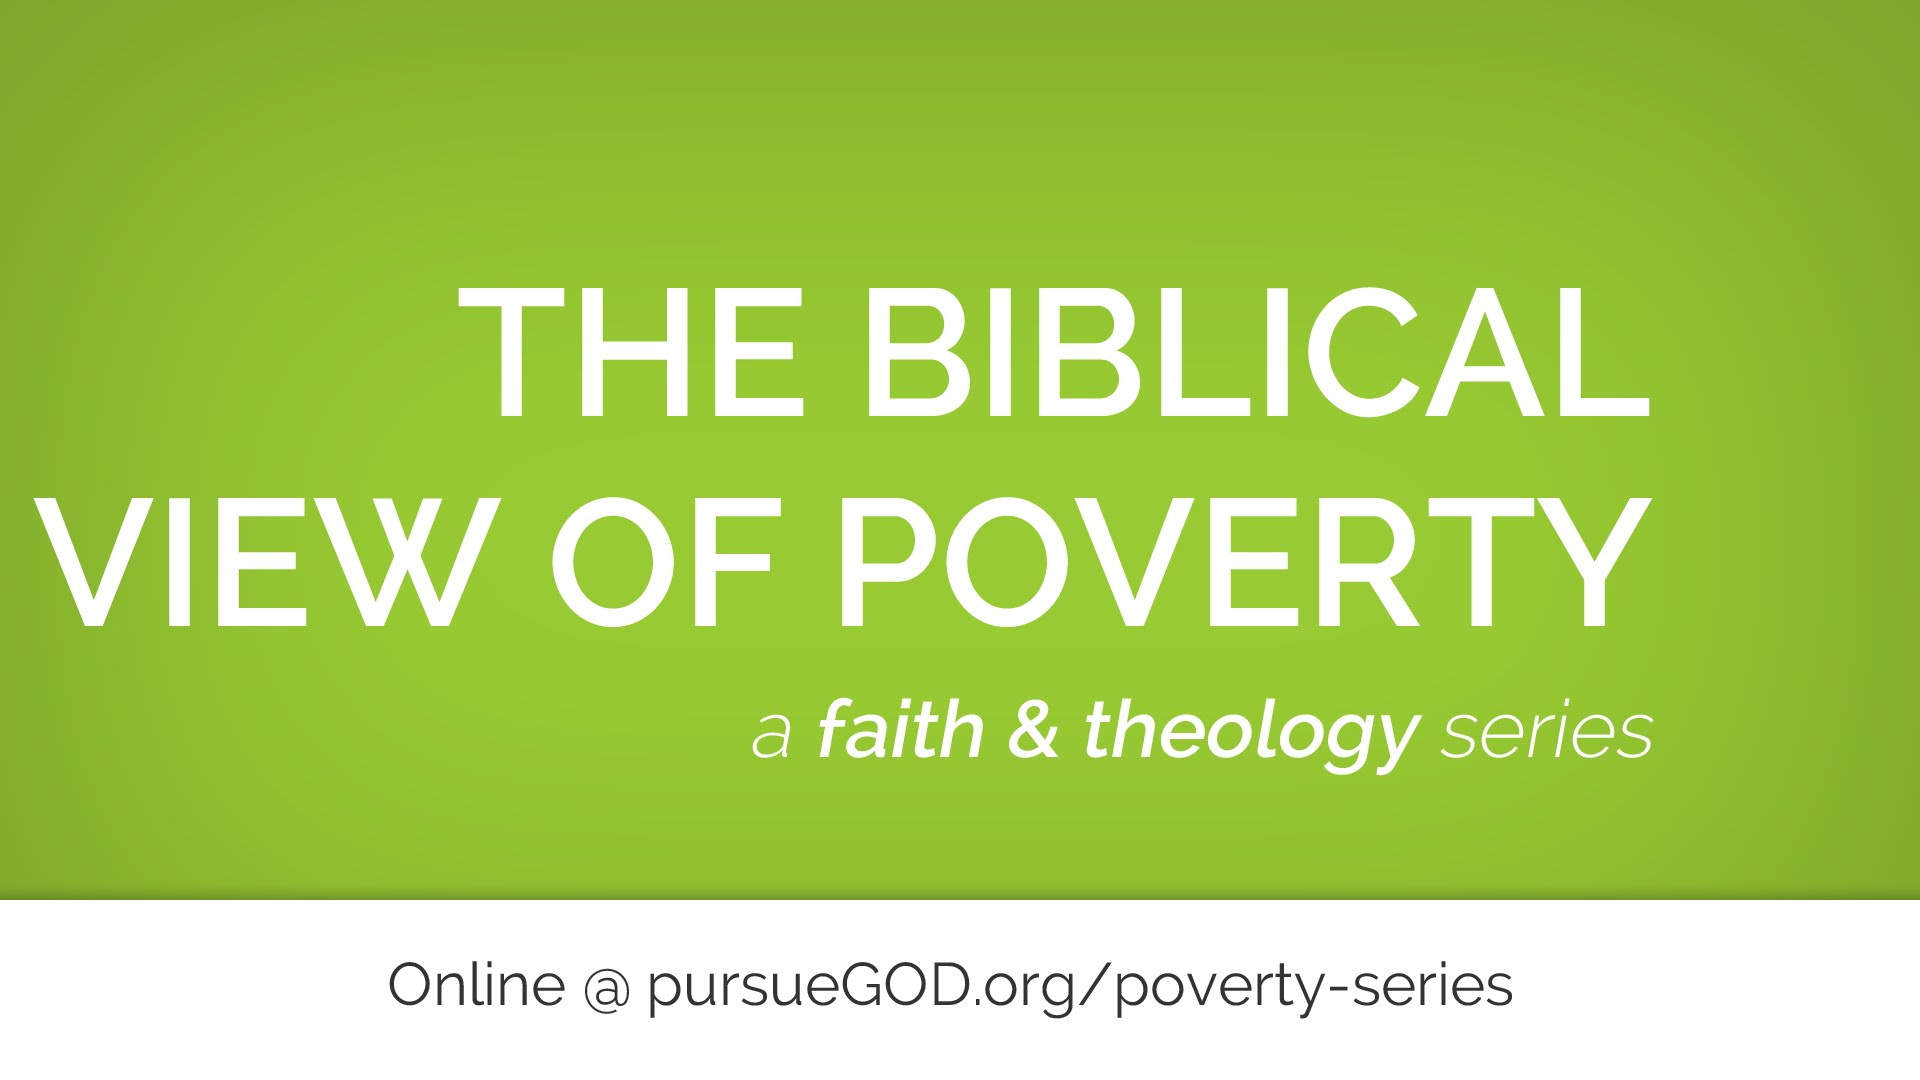 The Biblical View of Poverty (Series)